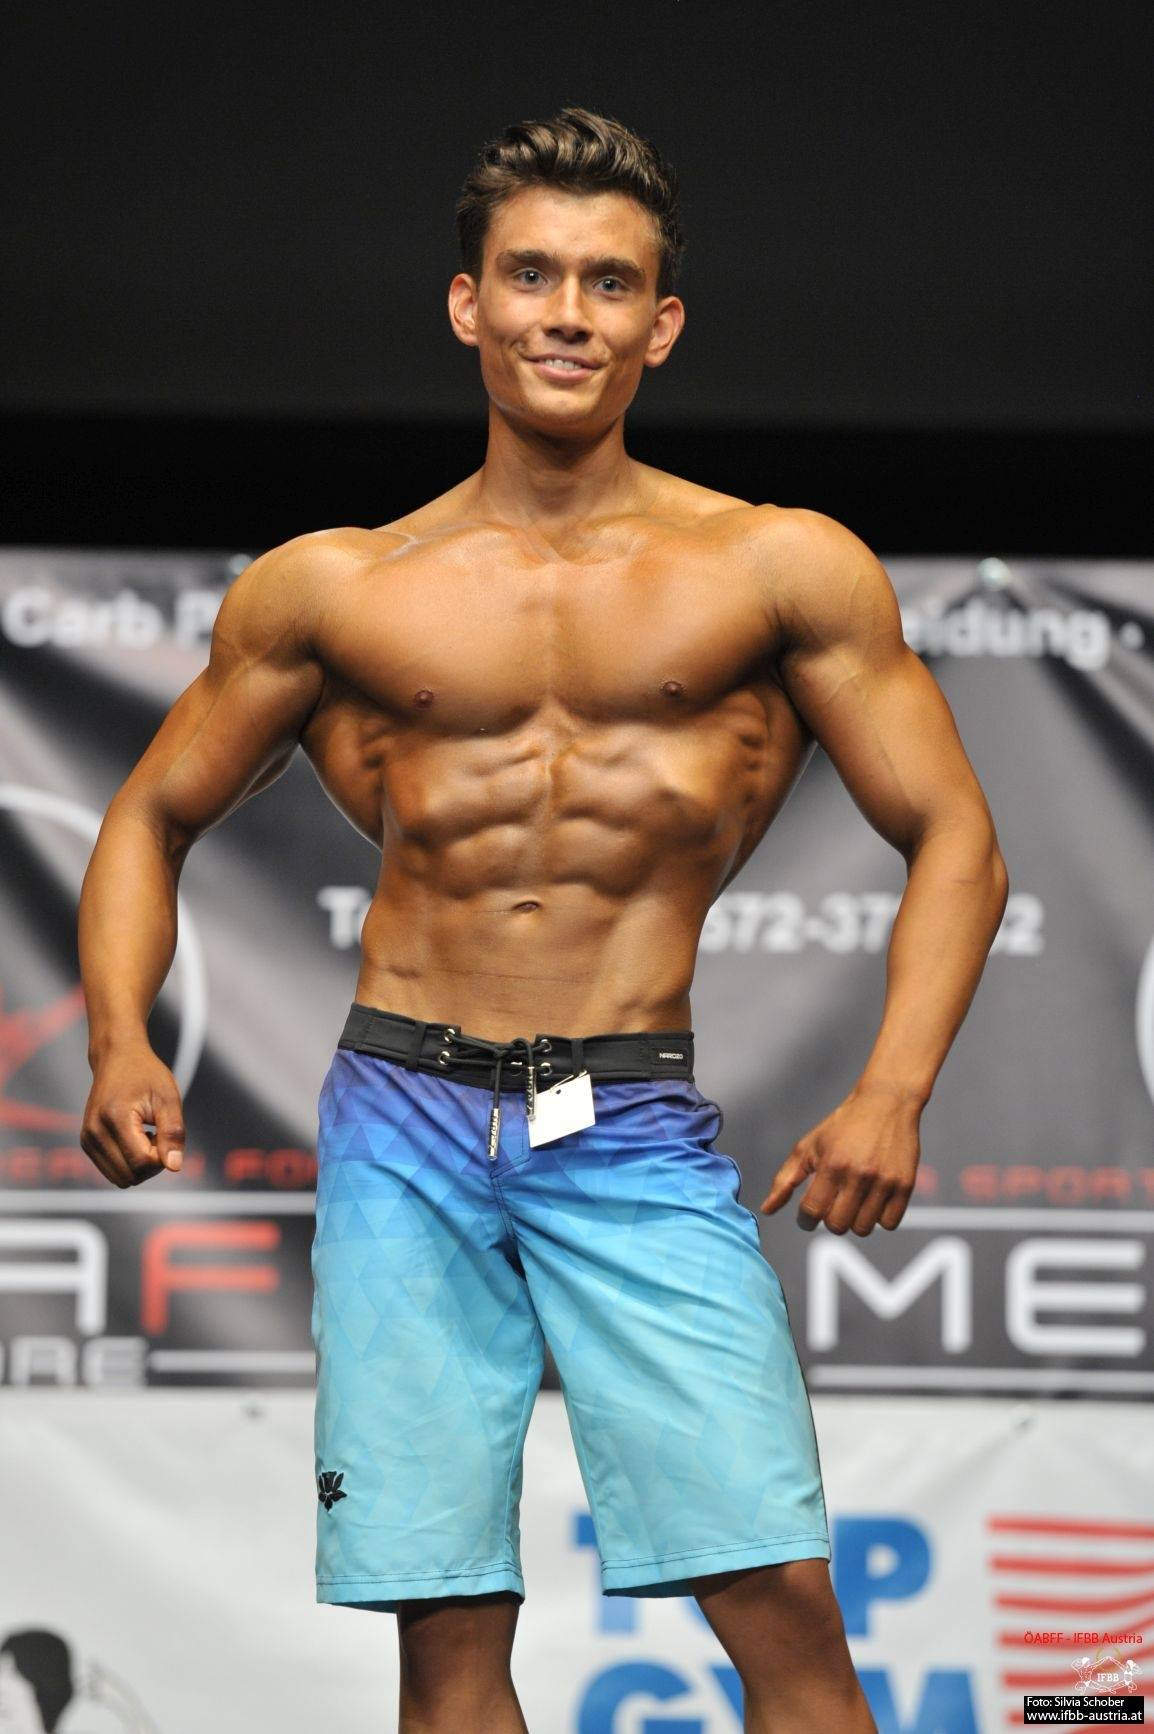 Josef Kogler (Junior Men´s Physique)